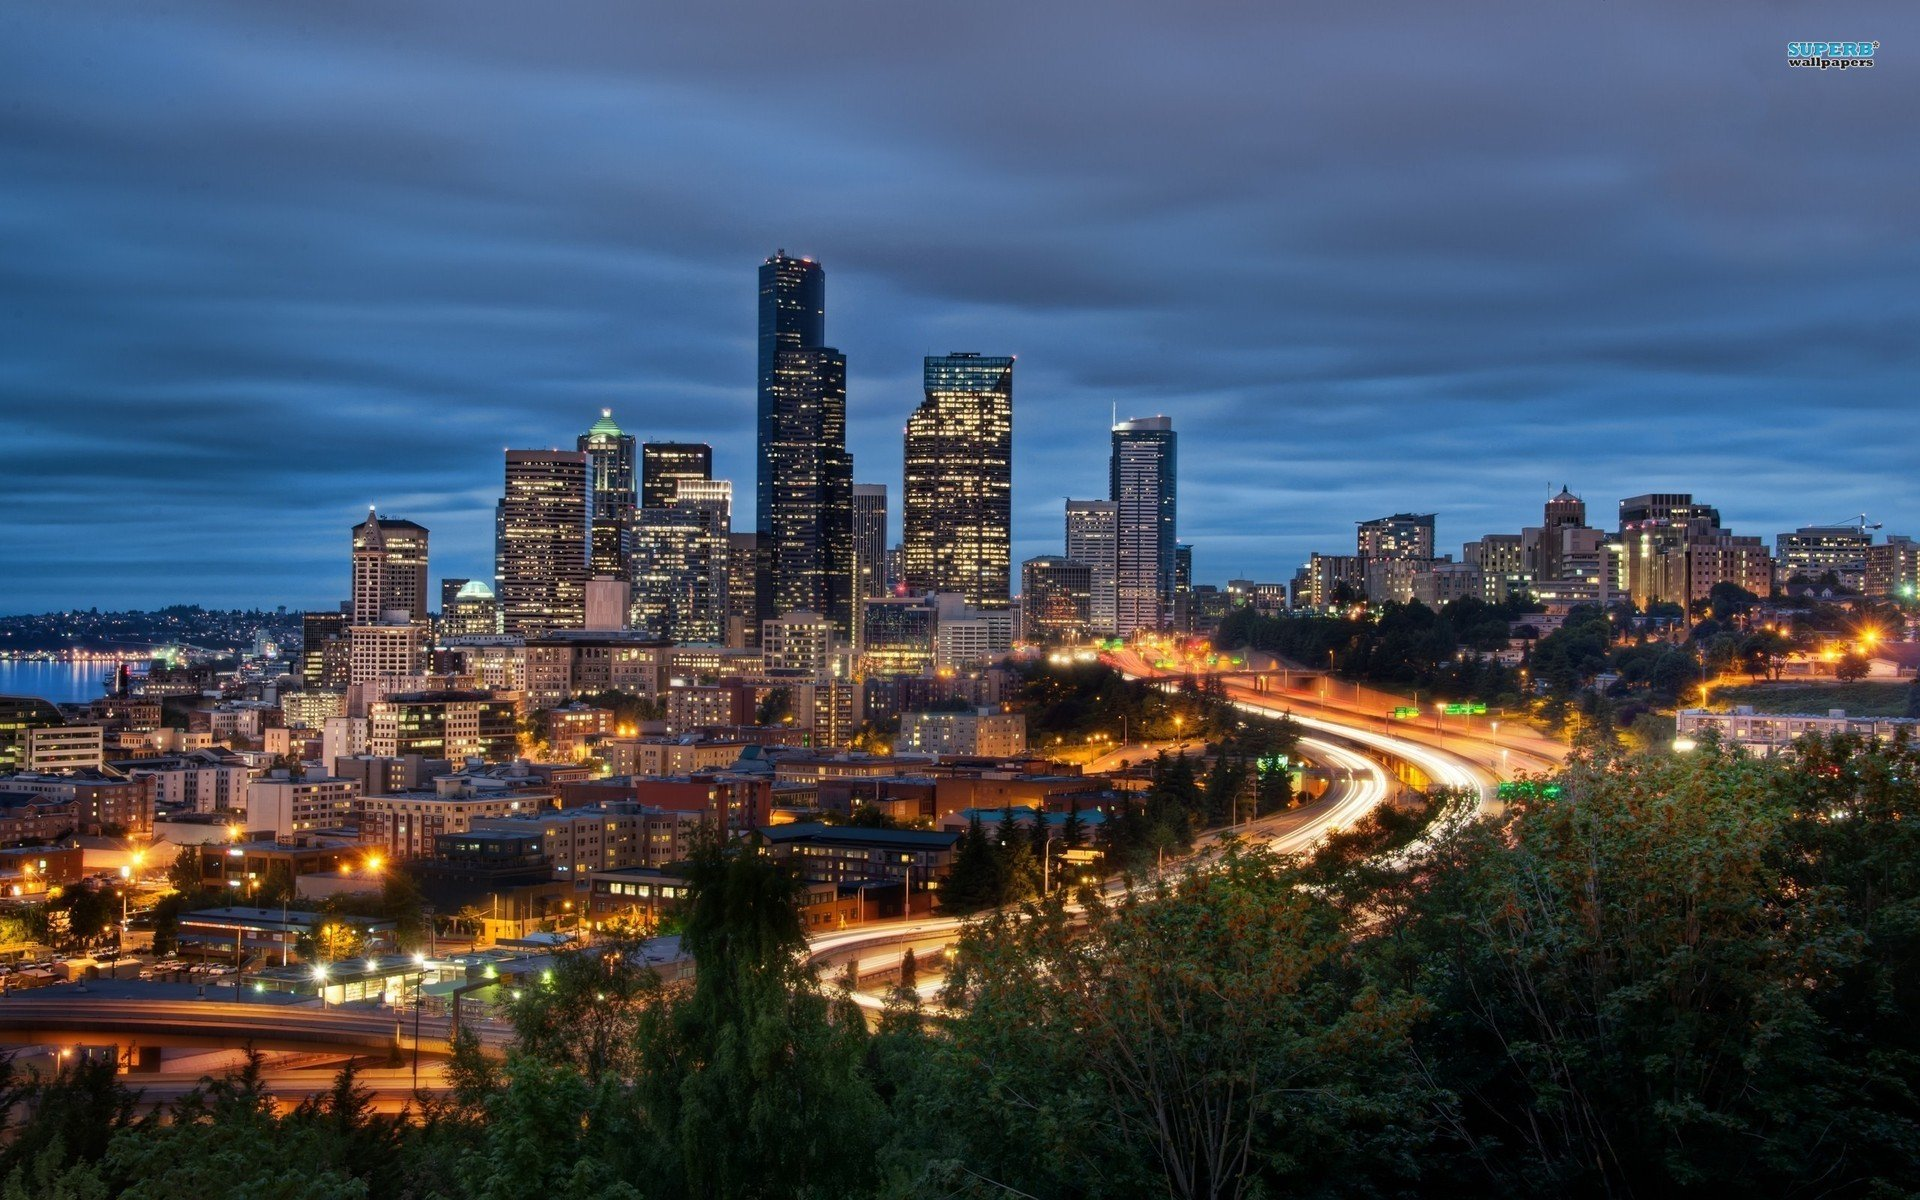 Seattle 4k Wallpapers For Your Desktop Or Mobile Screen Free And Easy To Download